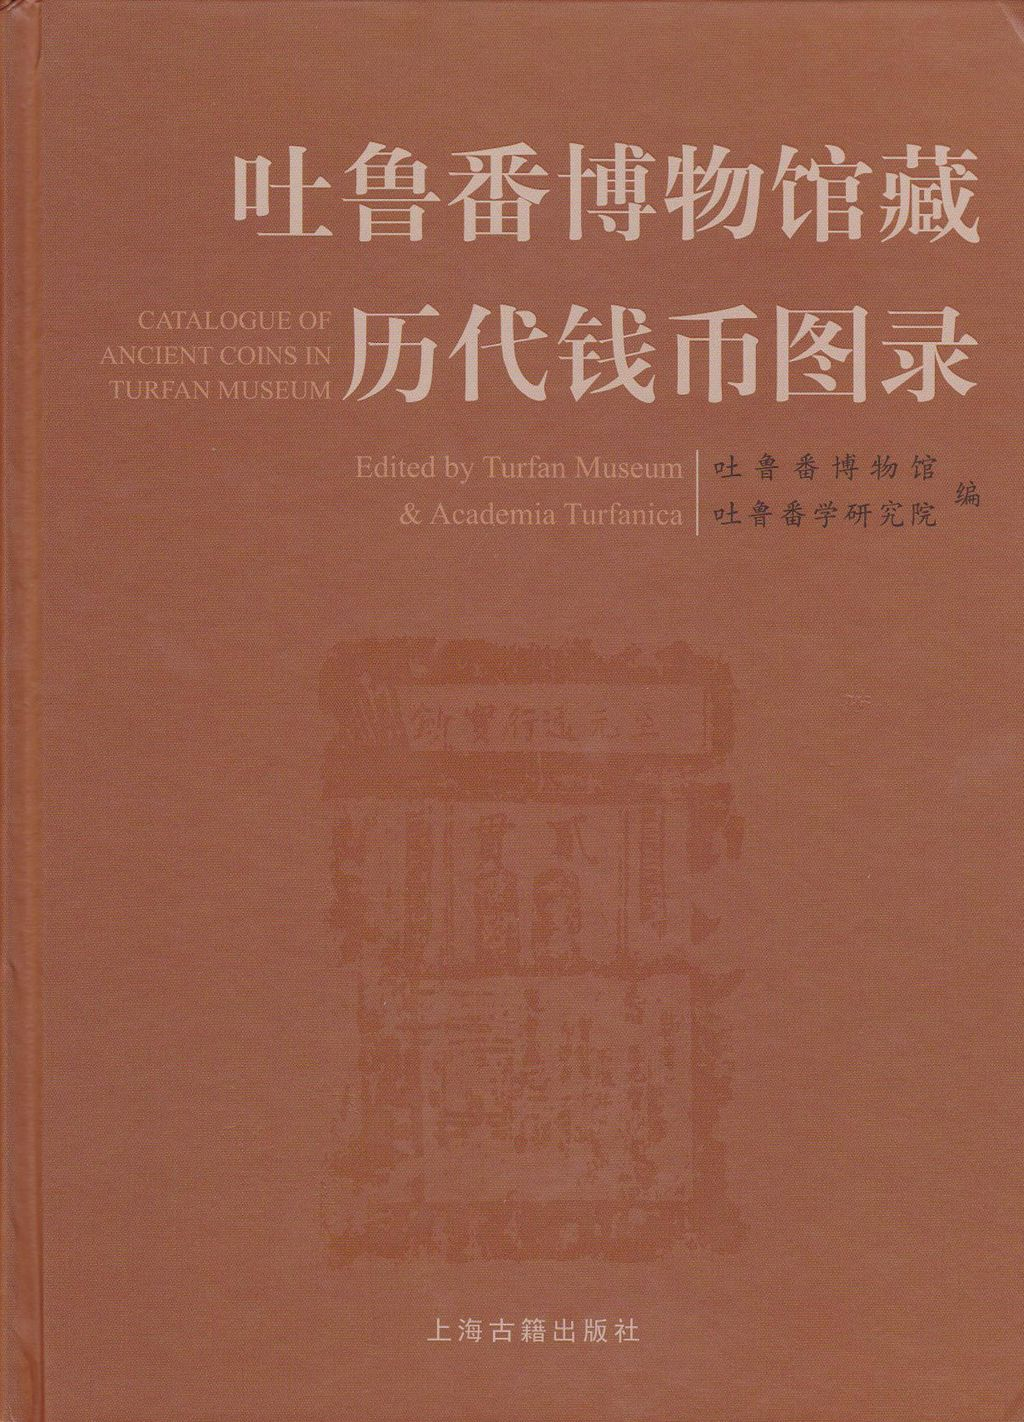 F1651, Catalogue of Ancient Coins in Turfan Museum, China 2013